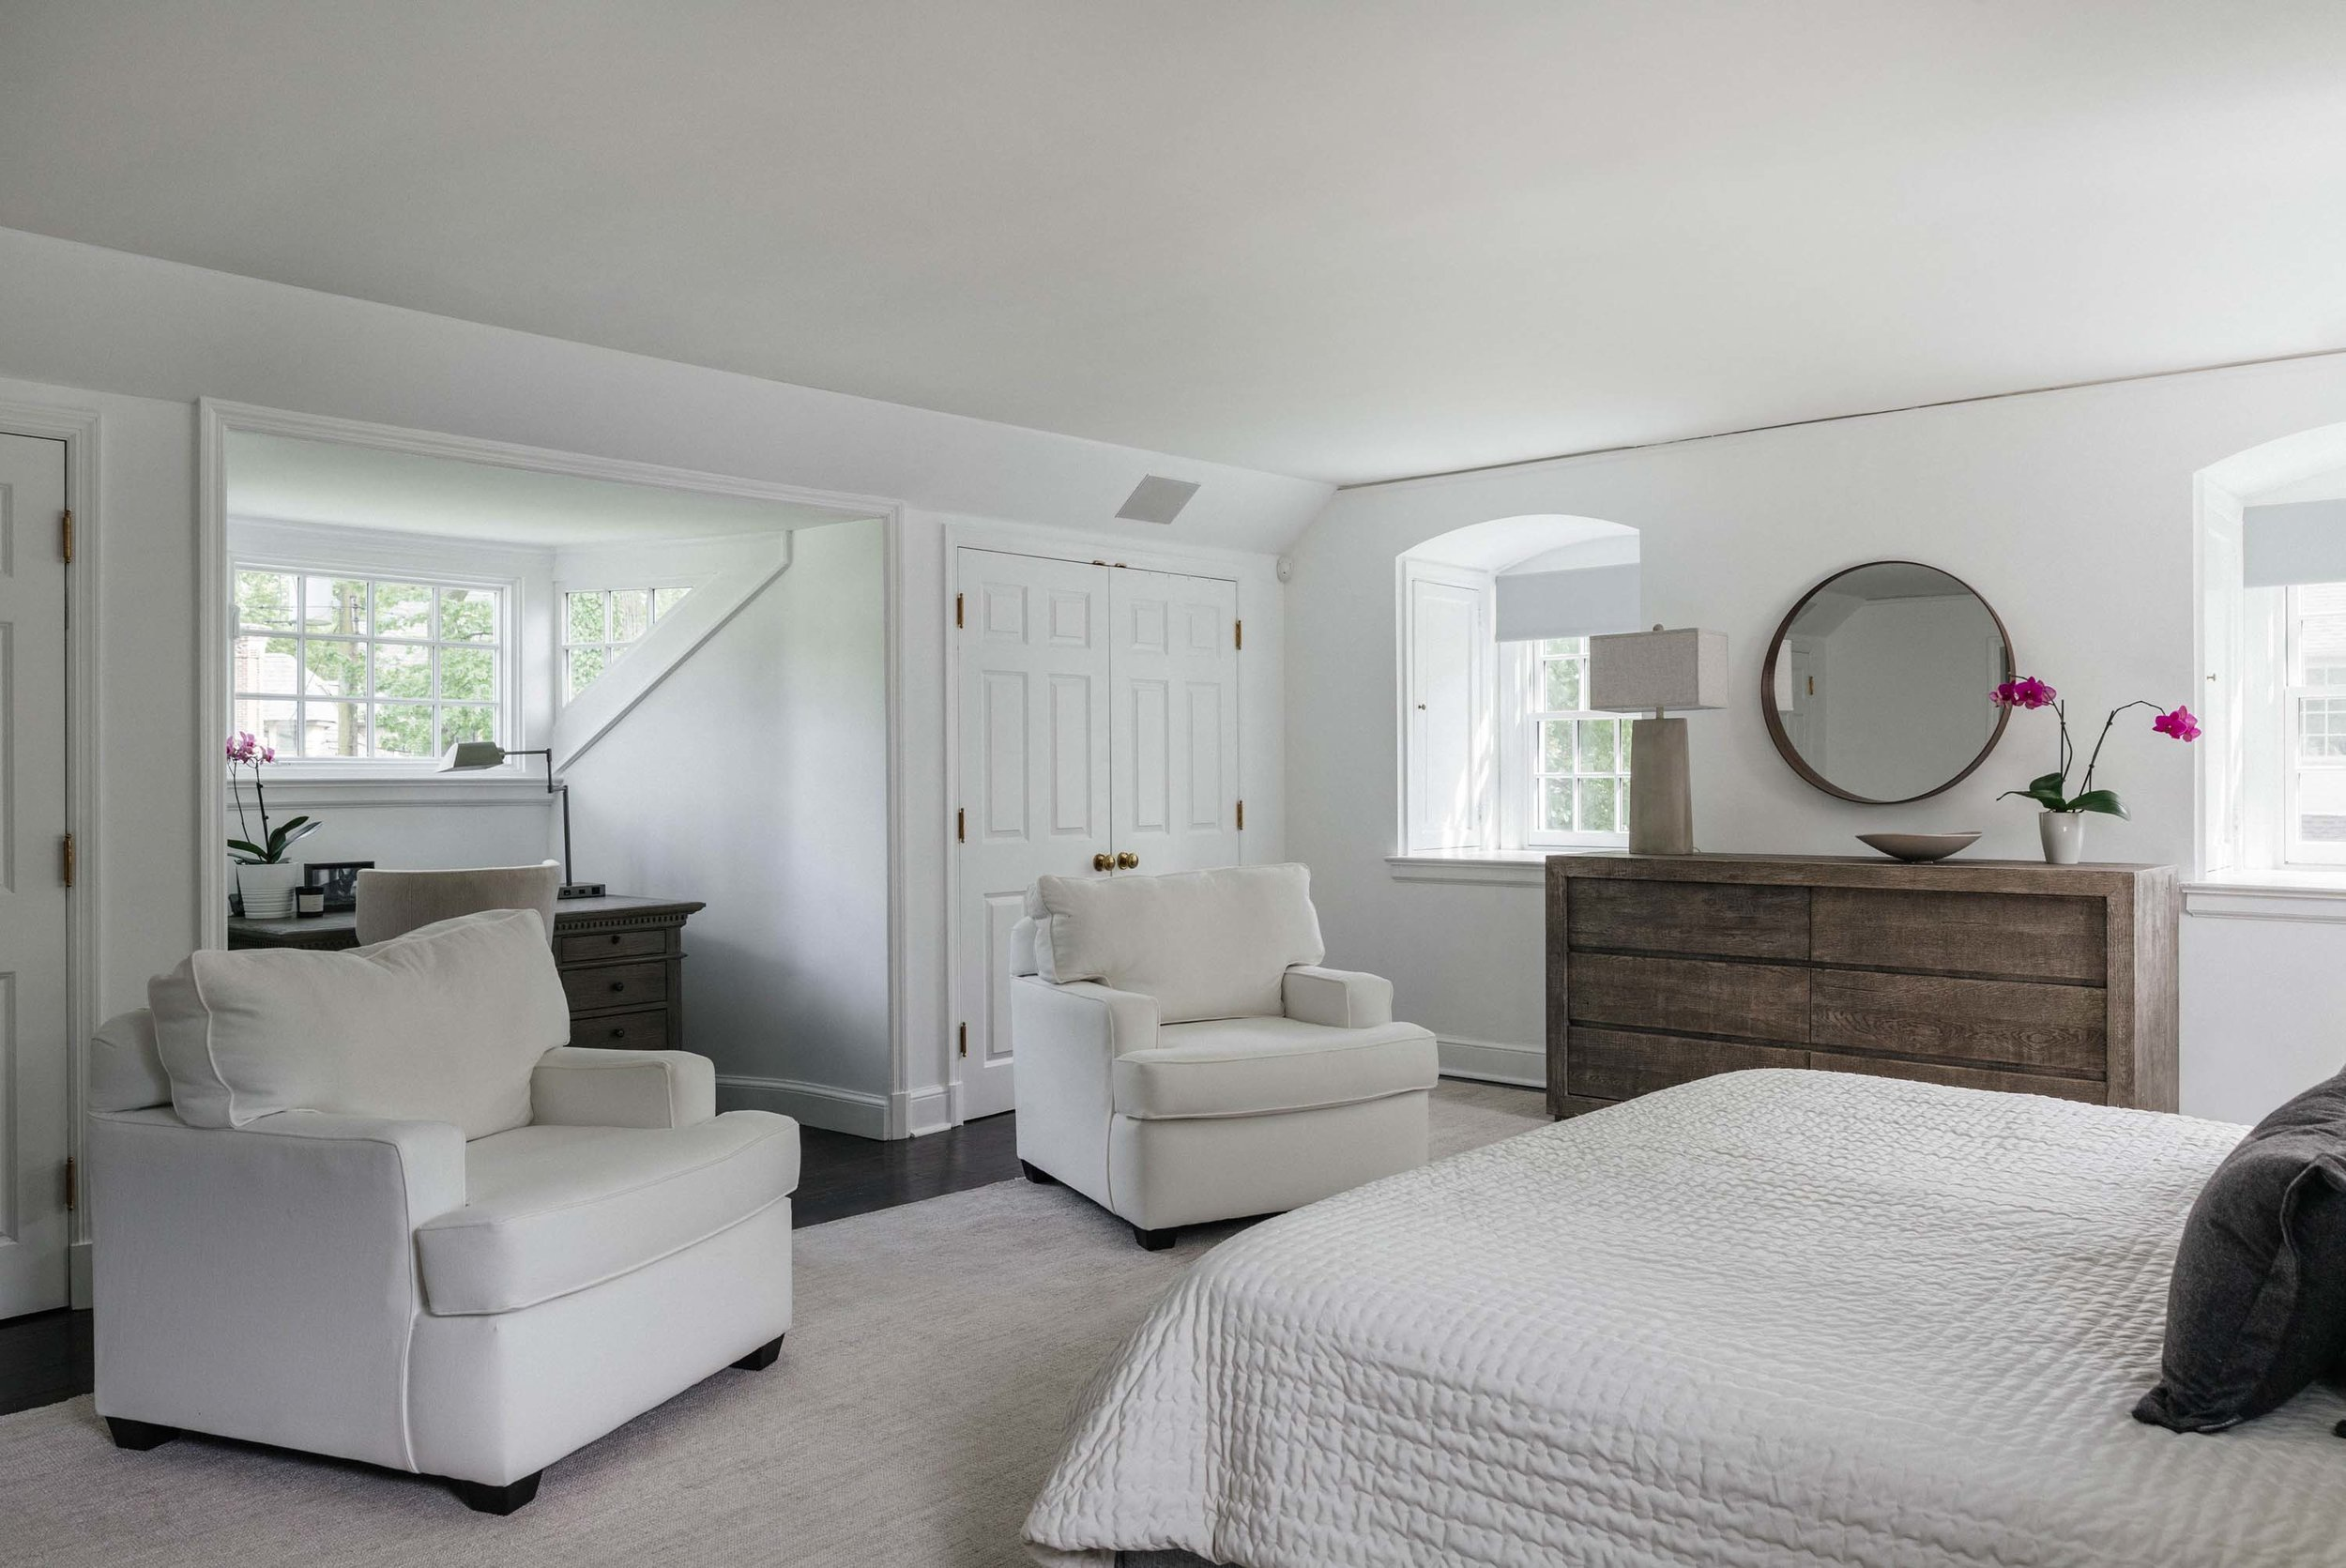 Bedroom with white painted wall, white arm chairs and white door